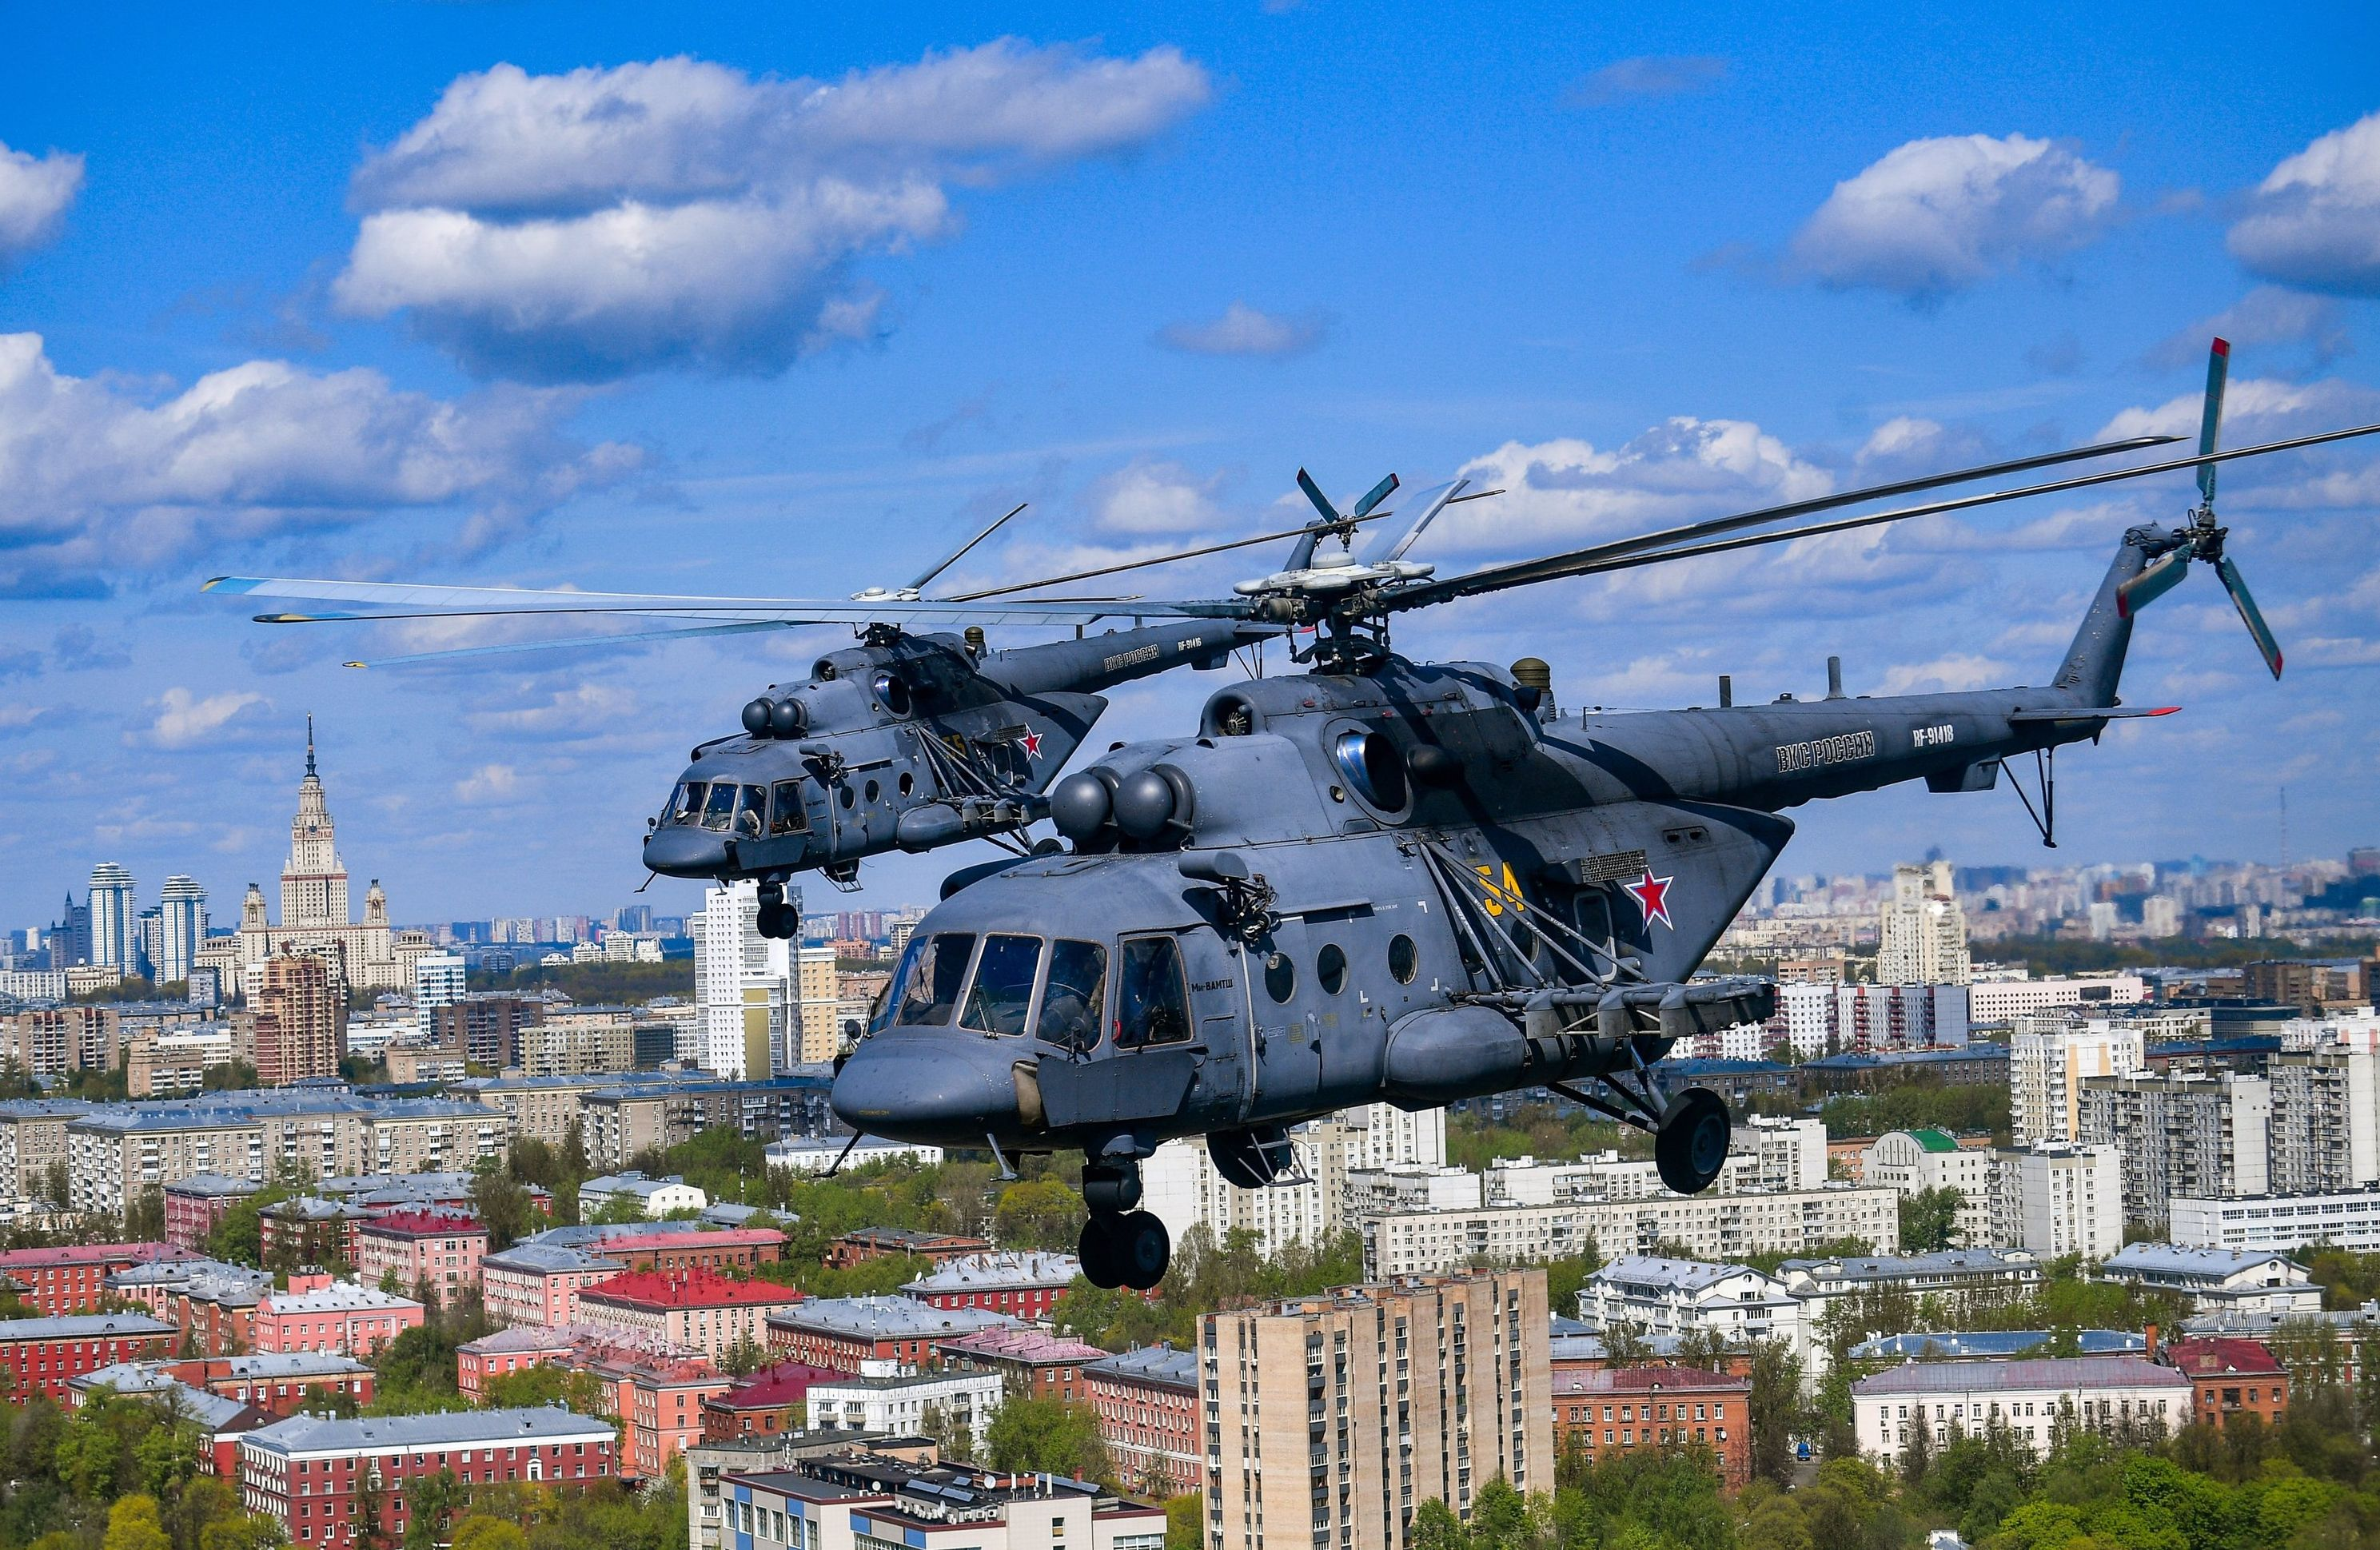 Mi-8 helicopters during V-Day parade rehearsal